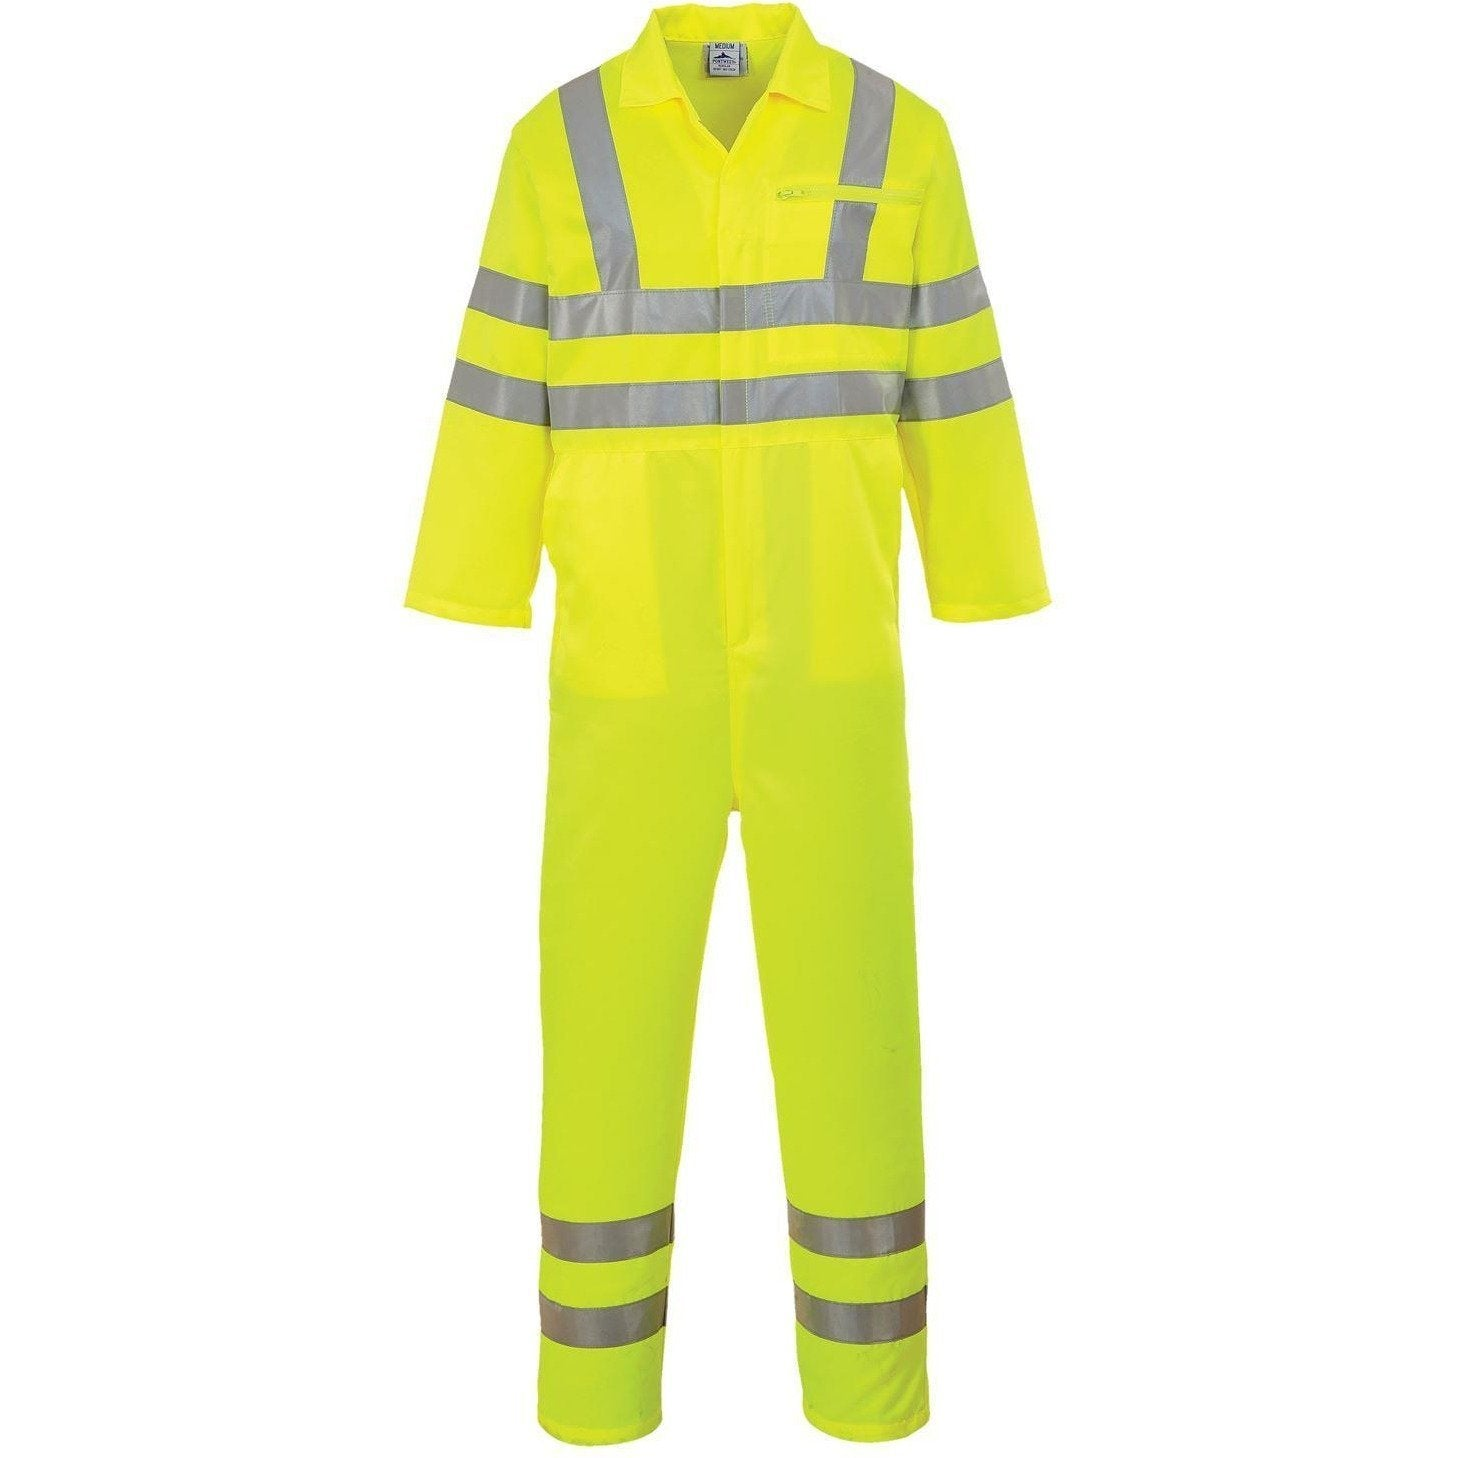 Portwest Hi-Vis Poly-cotton Coverall E042 - reid outdoors